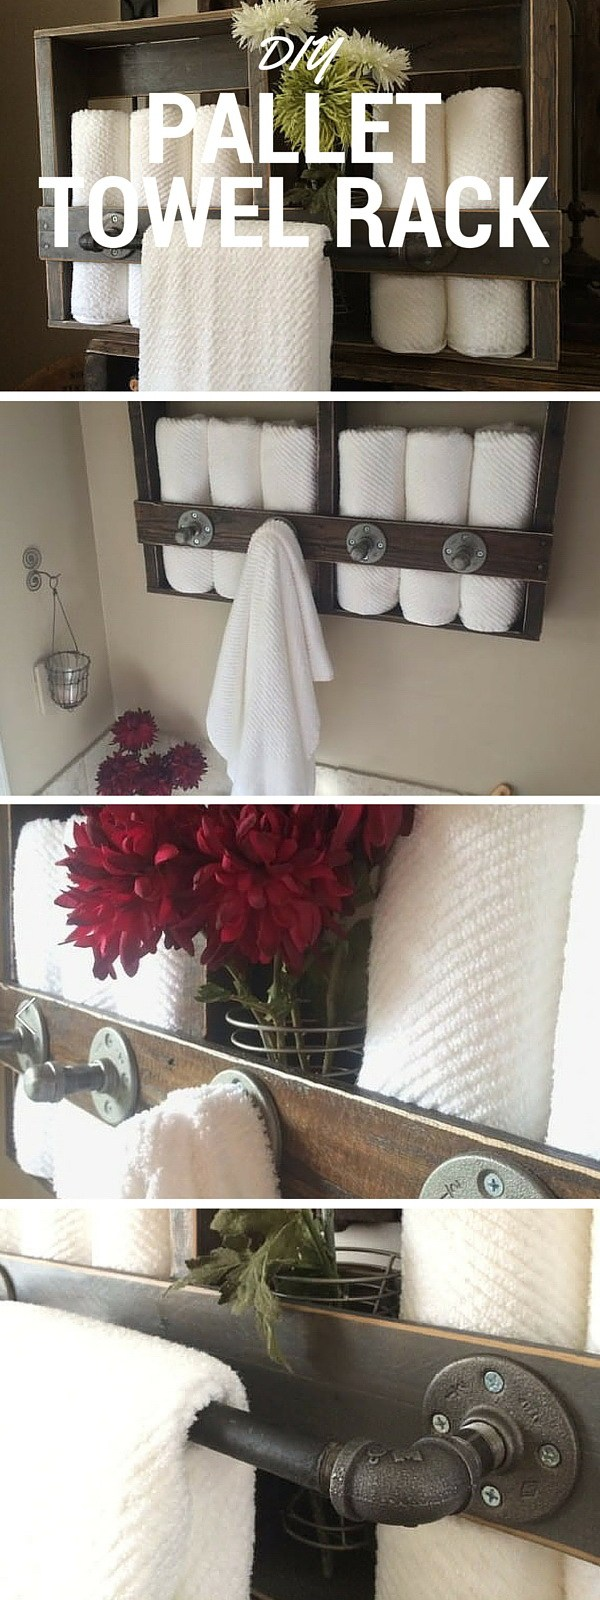 Shelves and Racks: Re-purposing old pallets to make these shelves and racks! They give an instant rustic accent to your decor.